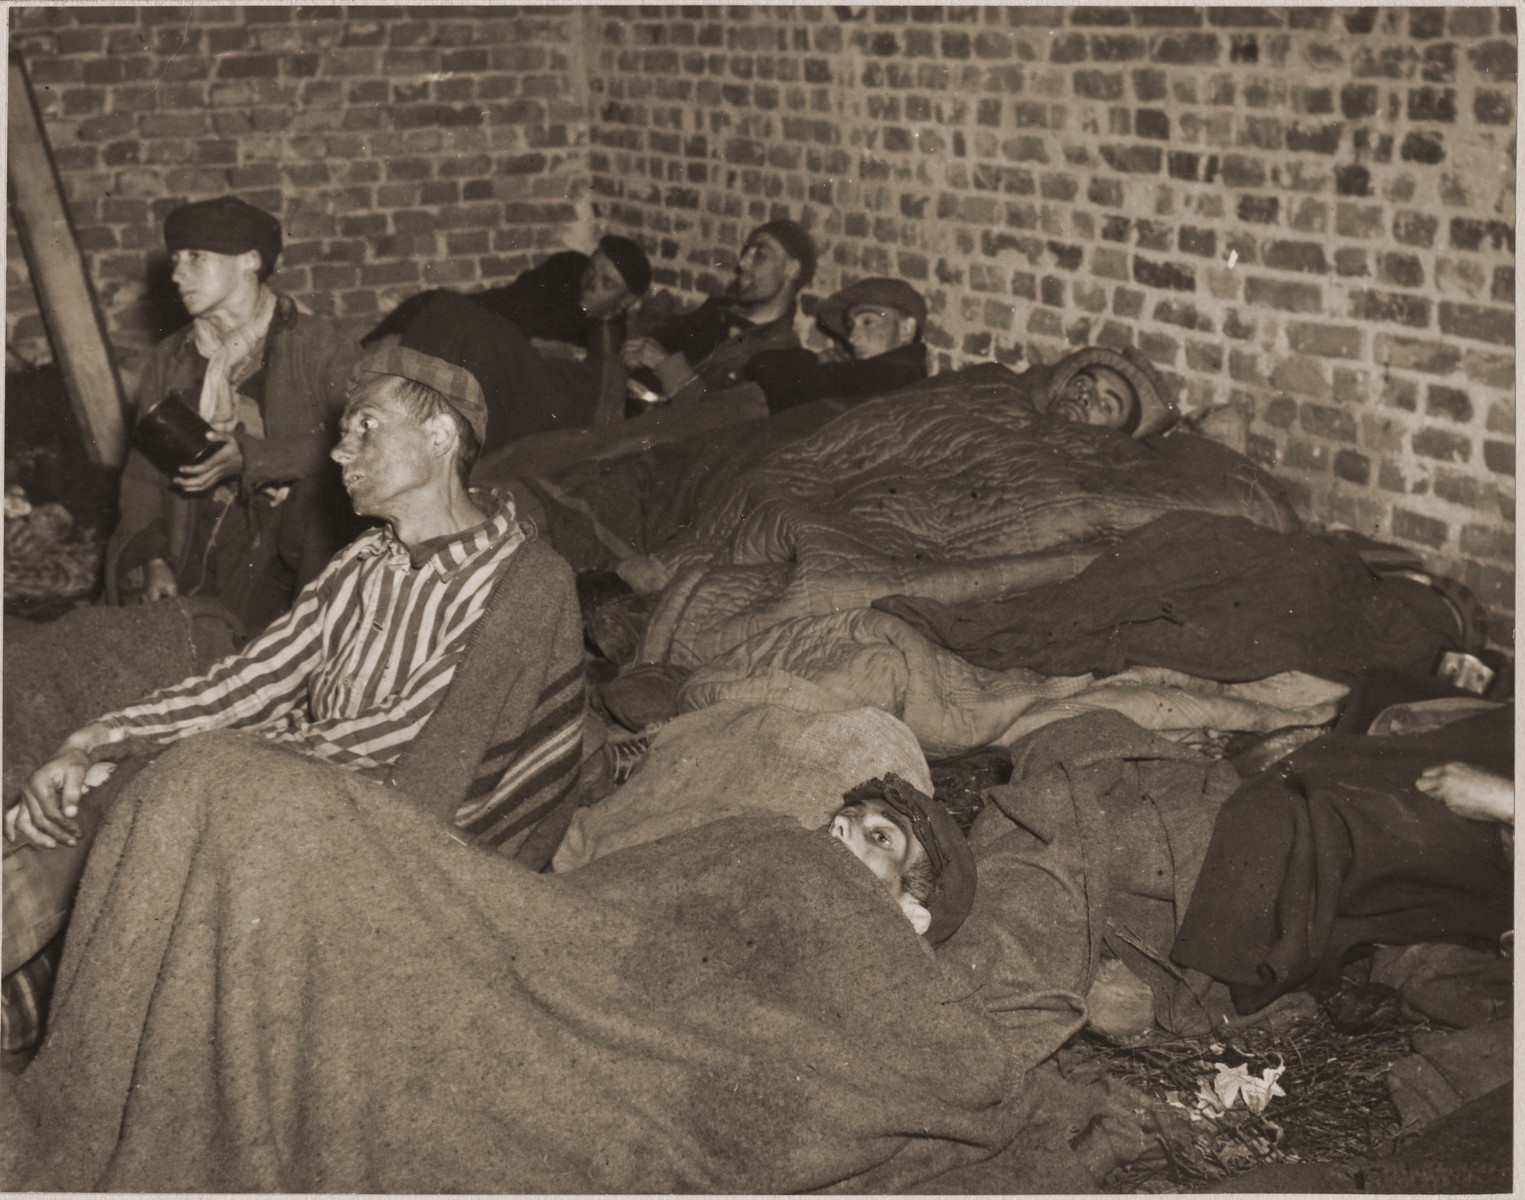 Survivors wrapped in blankets lie on the floor of a barracks in Woebbelin.  The boy in the upper left wearing a black cap is Geae Meissels (age 12-13).